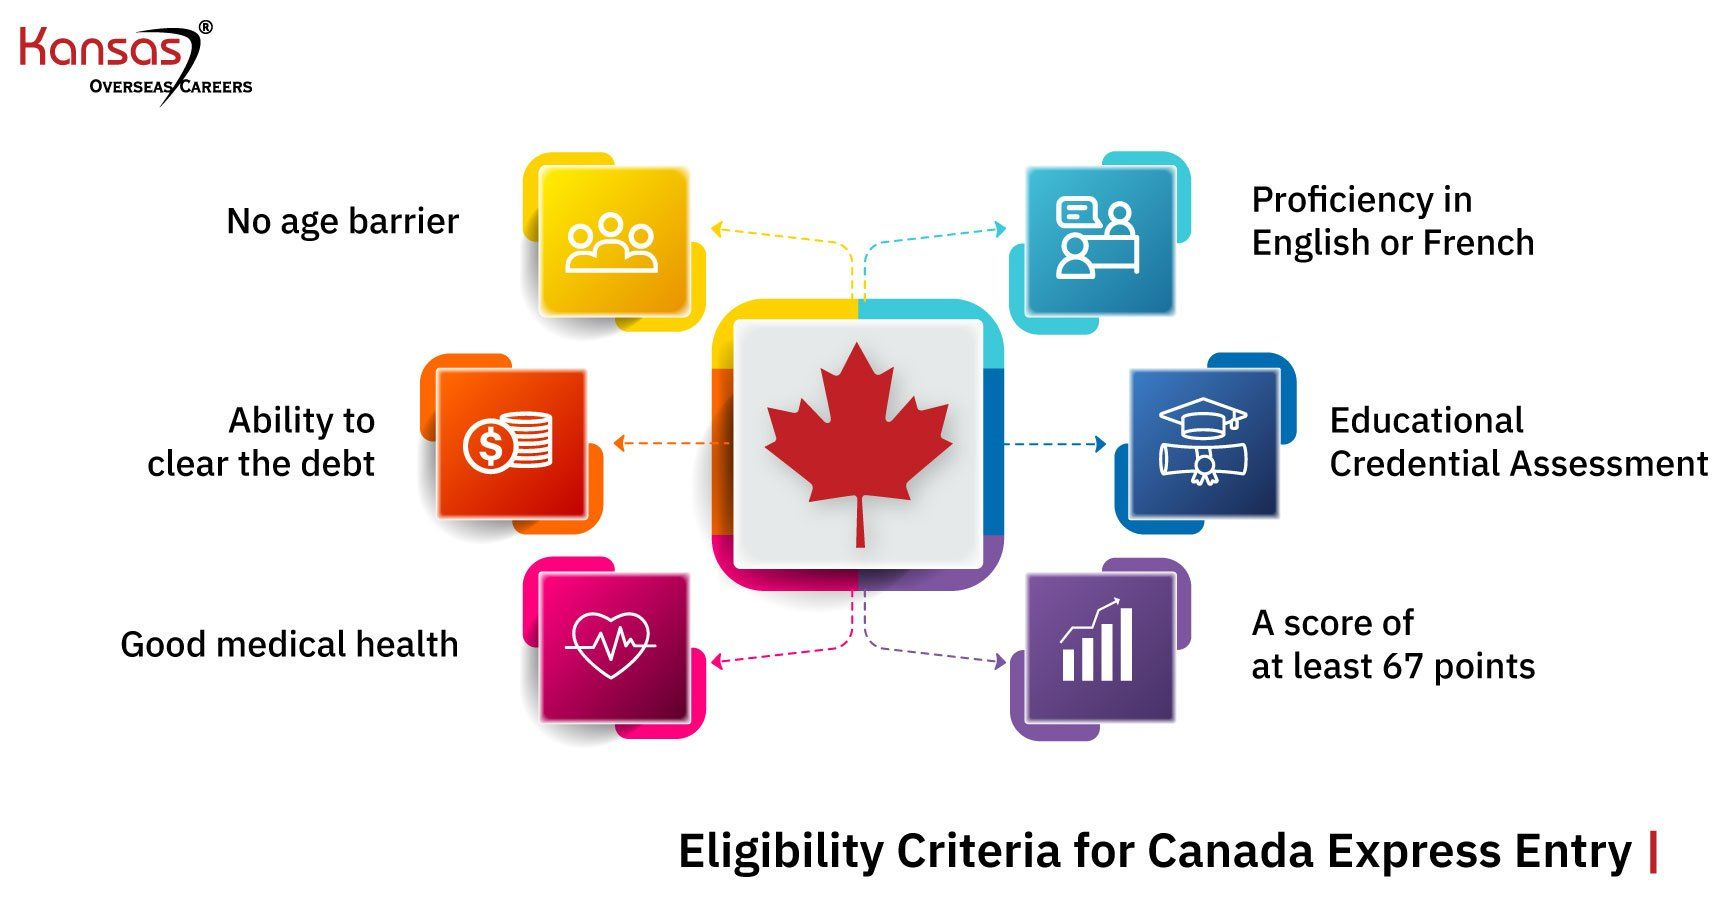 What-is-the-Eligibility-Criteria-for-Canada-Express-Entry